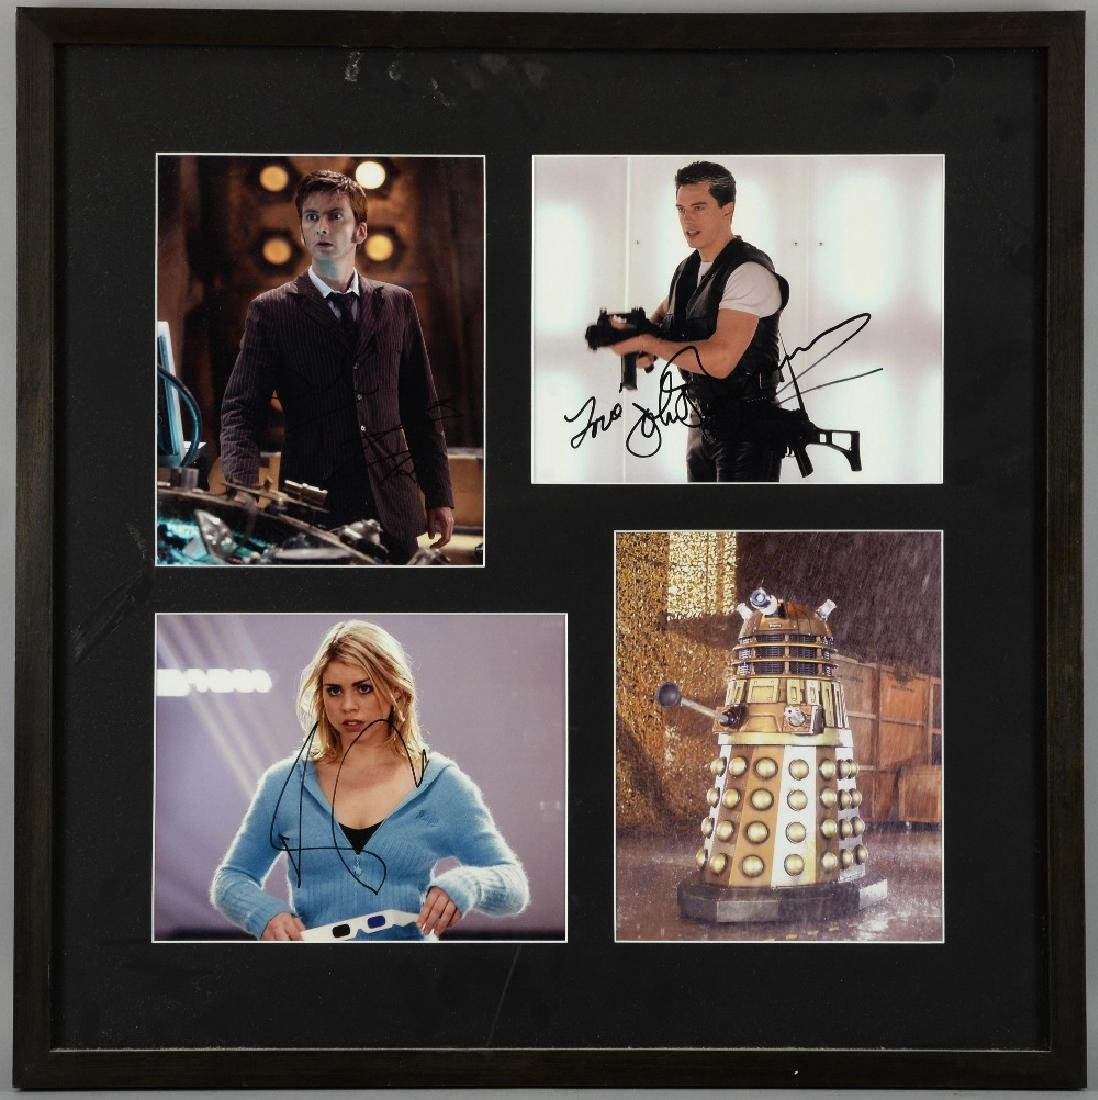 Doctor Who - BBC TV Series, a signed photographic